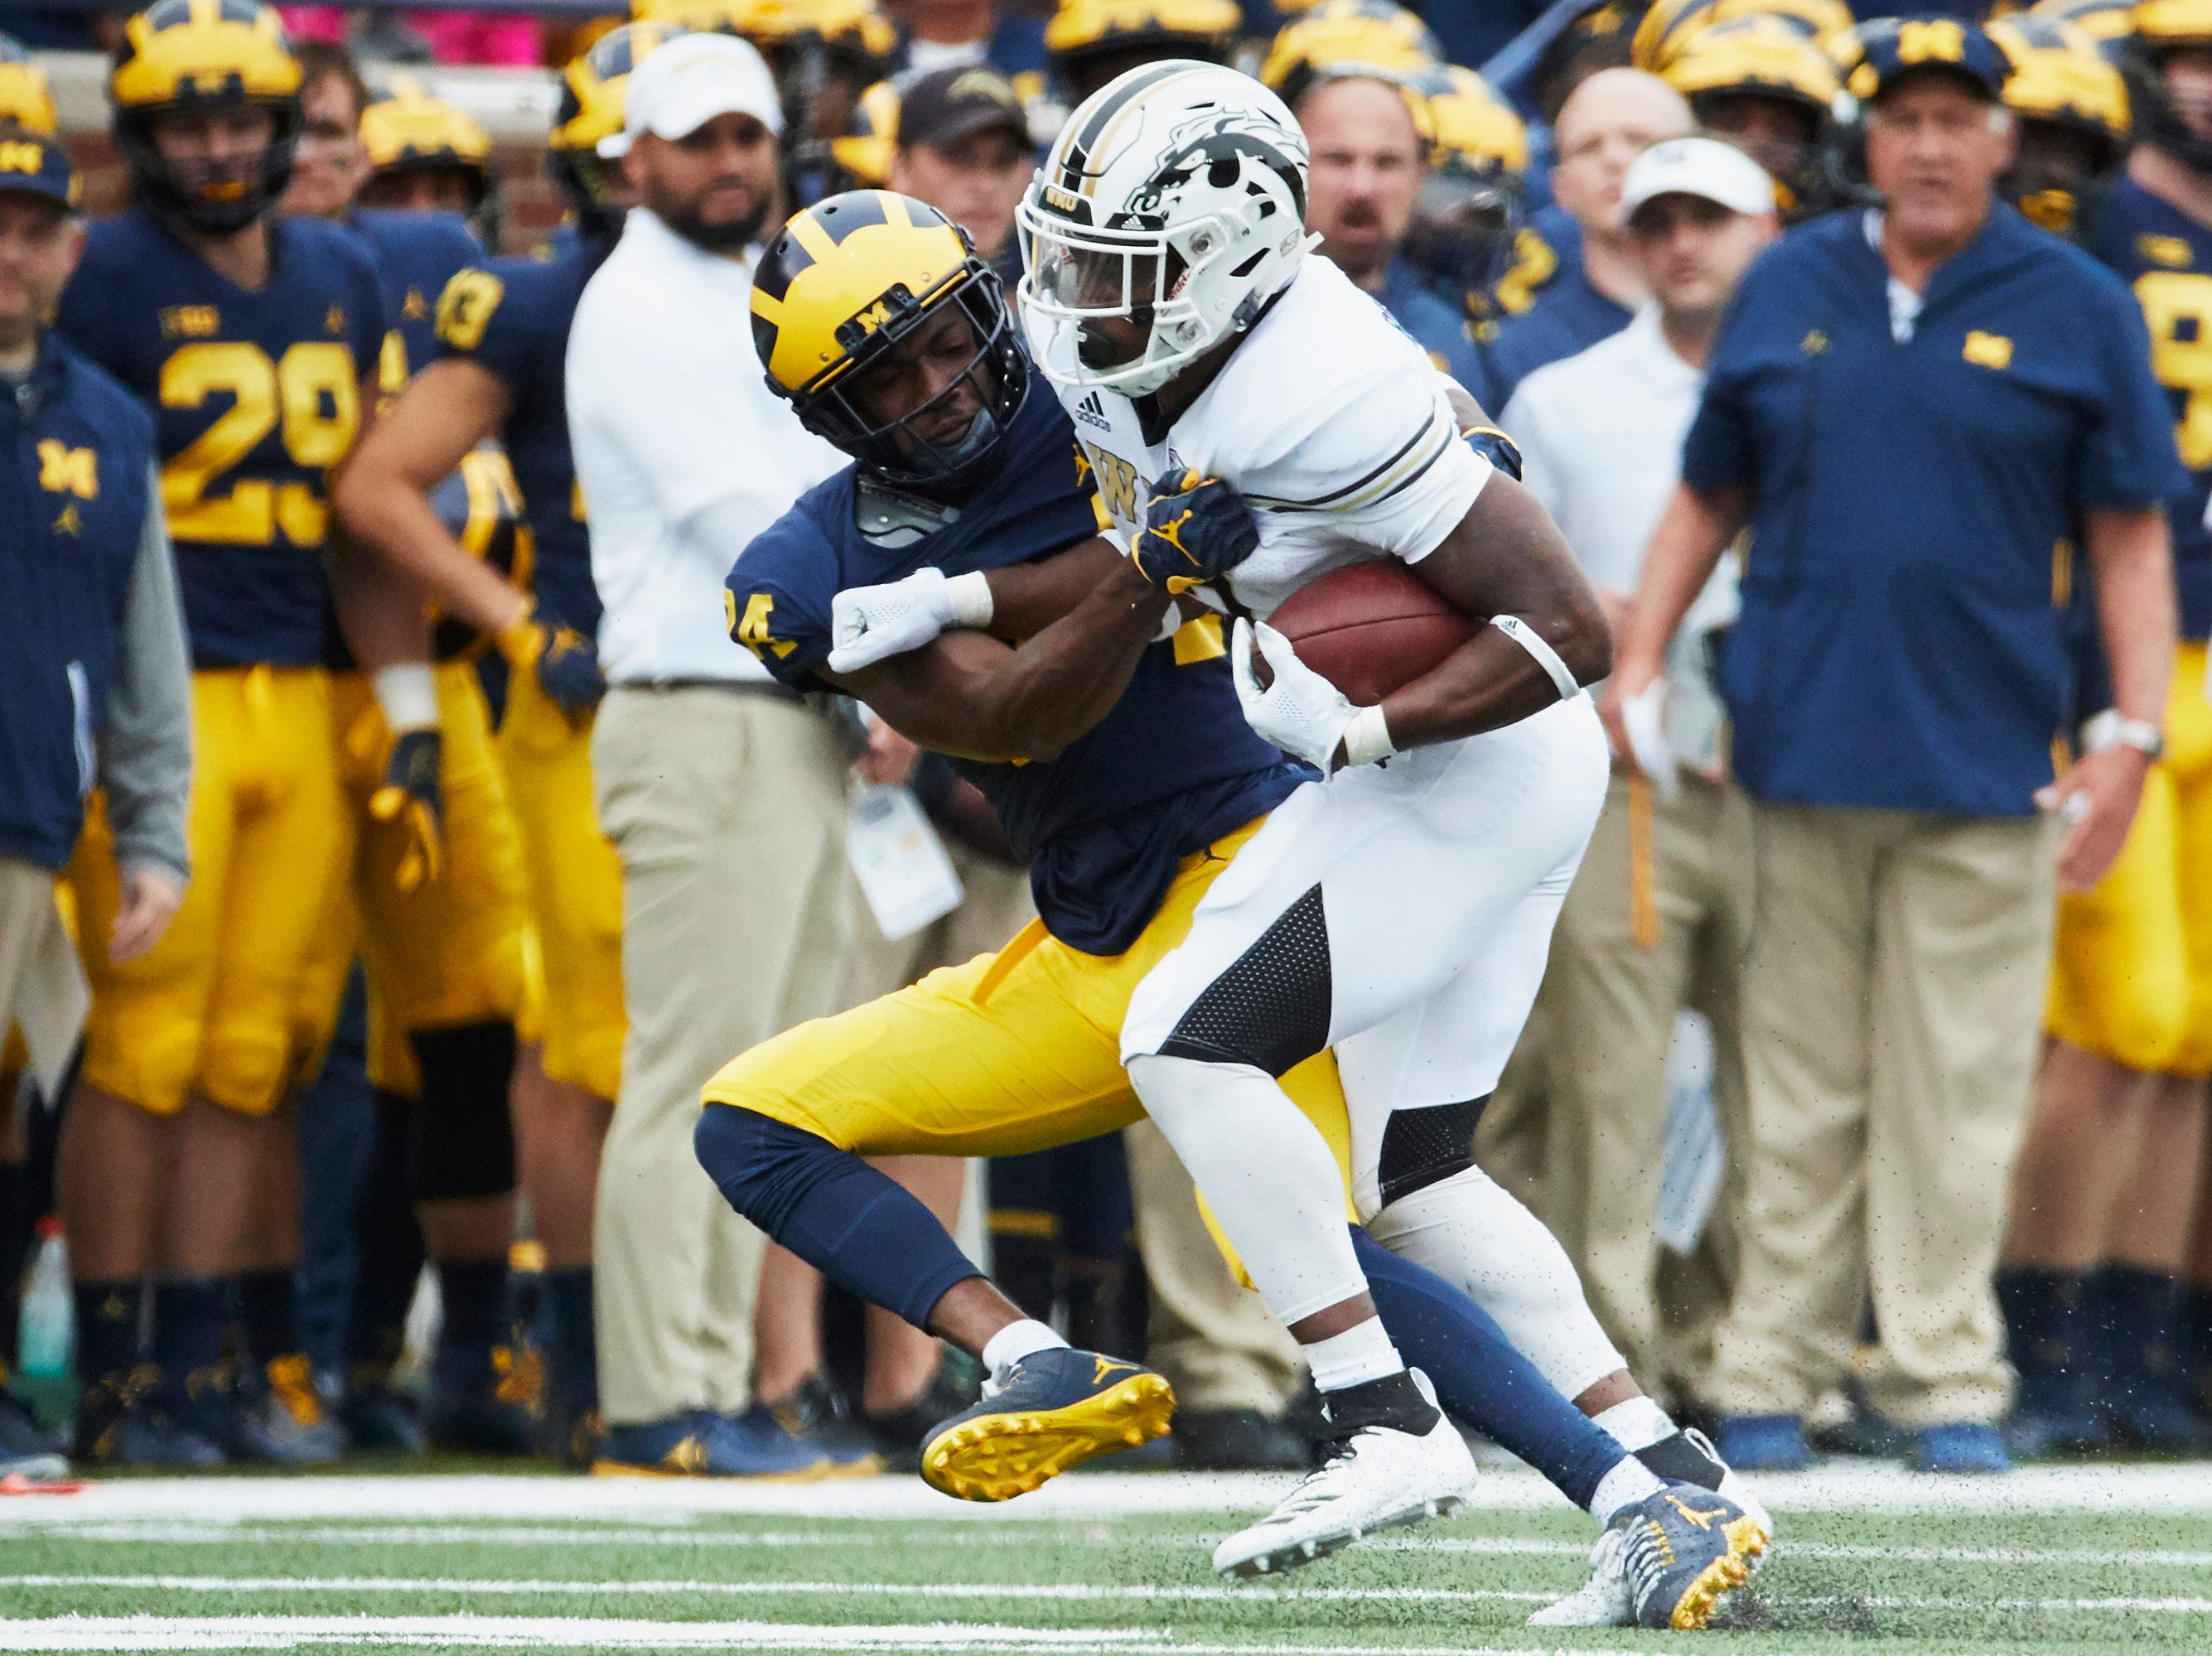 Western Michigan Broncos running back LeVante Bellamy (2) is tackled by Michigan Wolverines defensive back Lavert Hill (24) in the first half at Michigan Stadium.